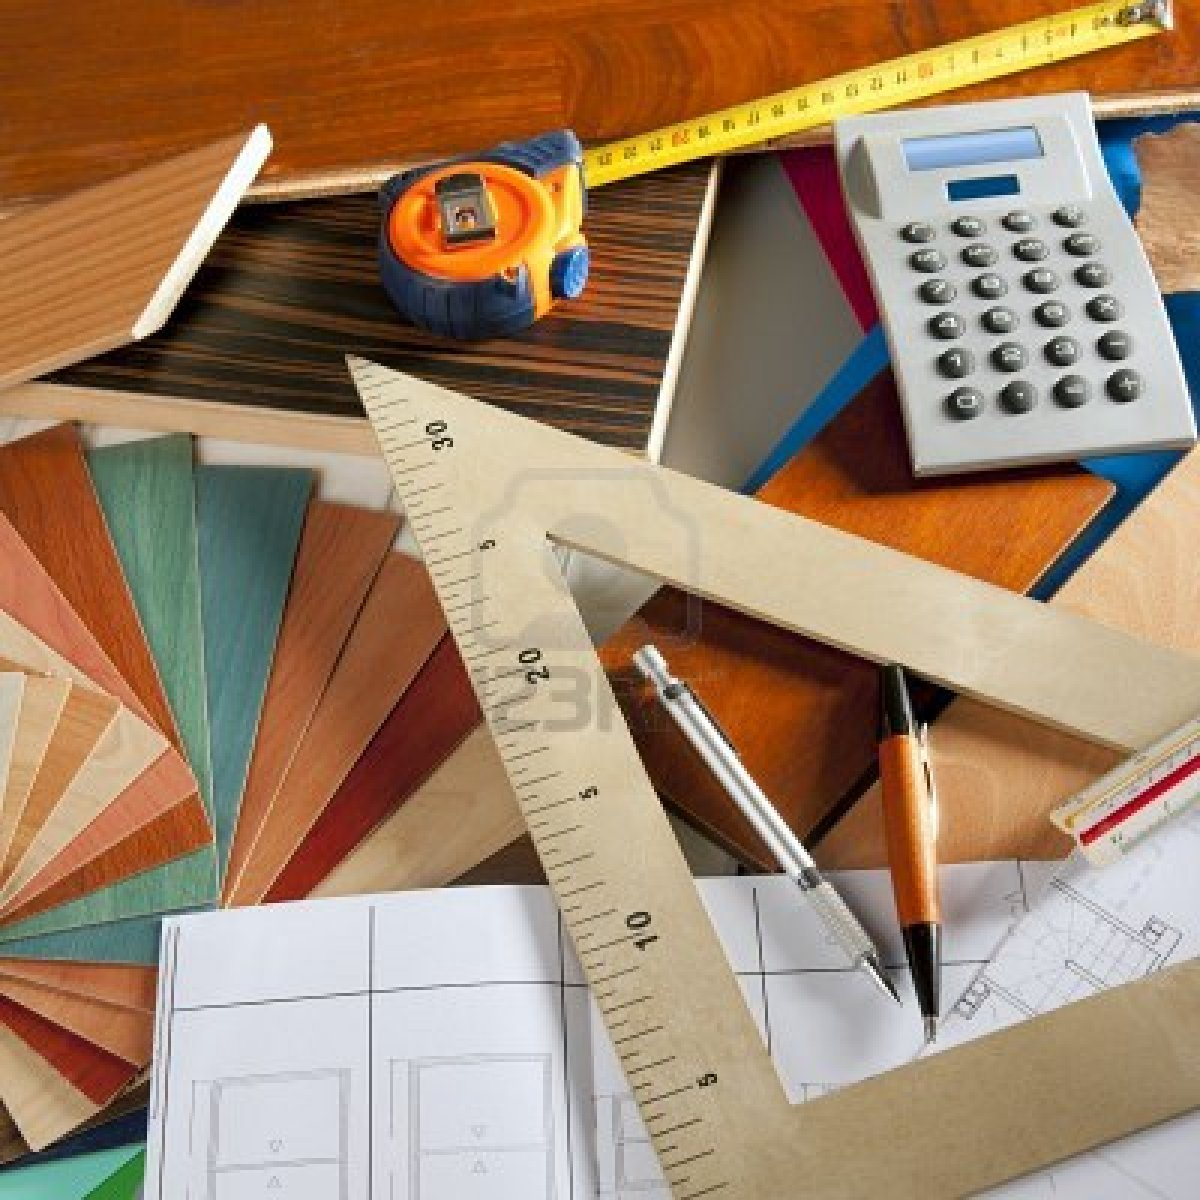 Human response and interior design exploring the for Online interior decorating tool